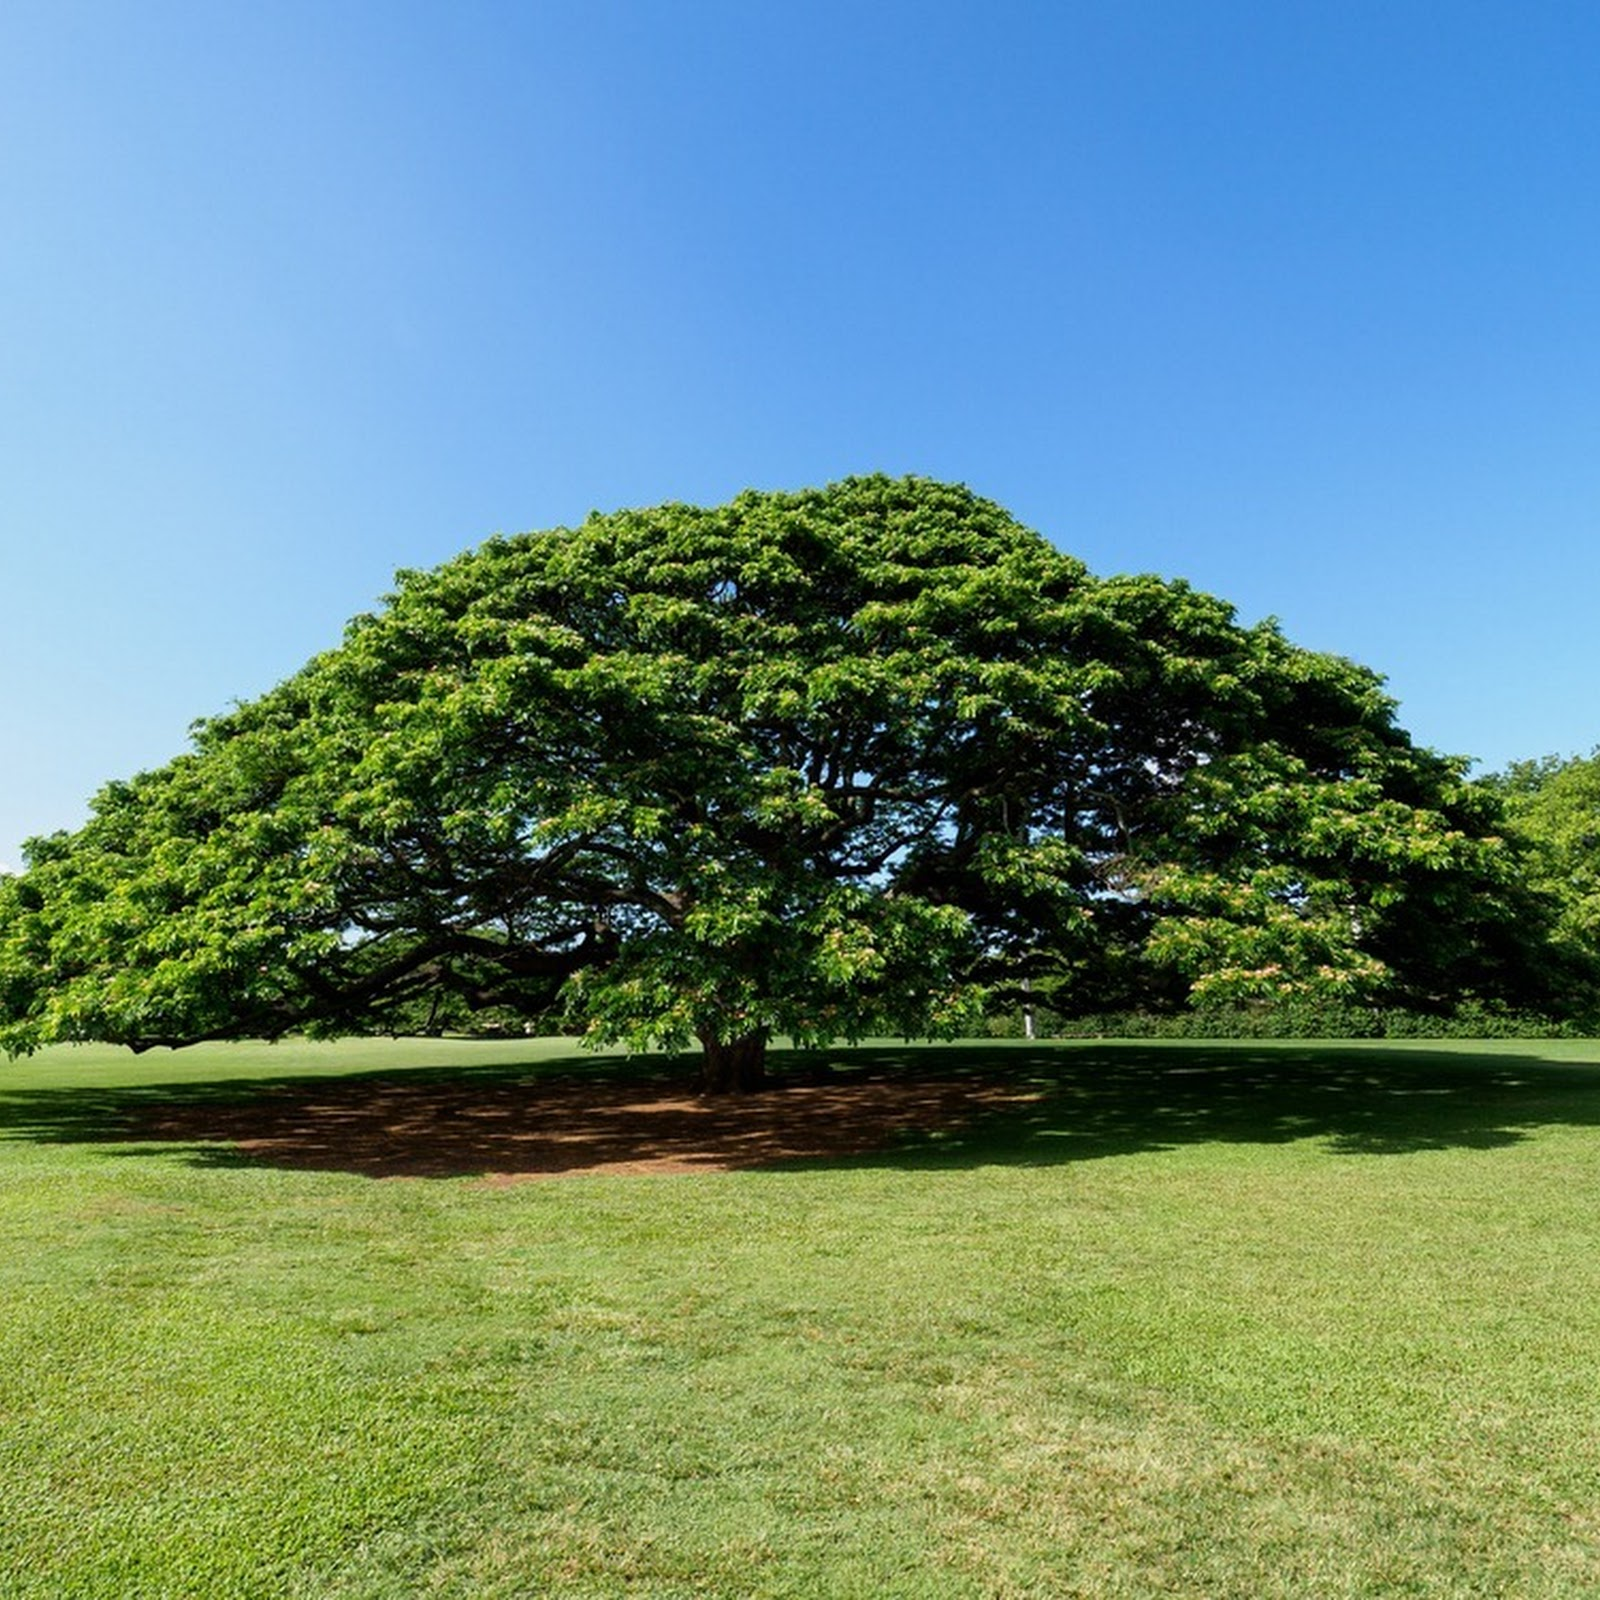 The Hitachi Tree of Moanalua Gardens